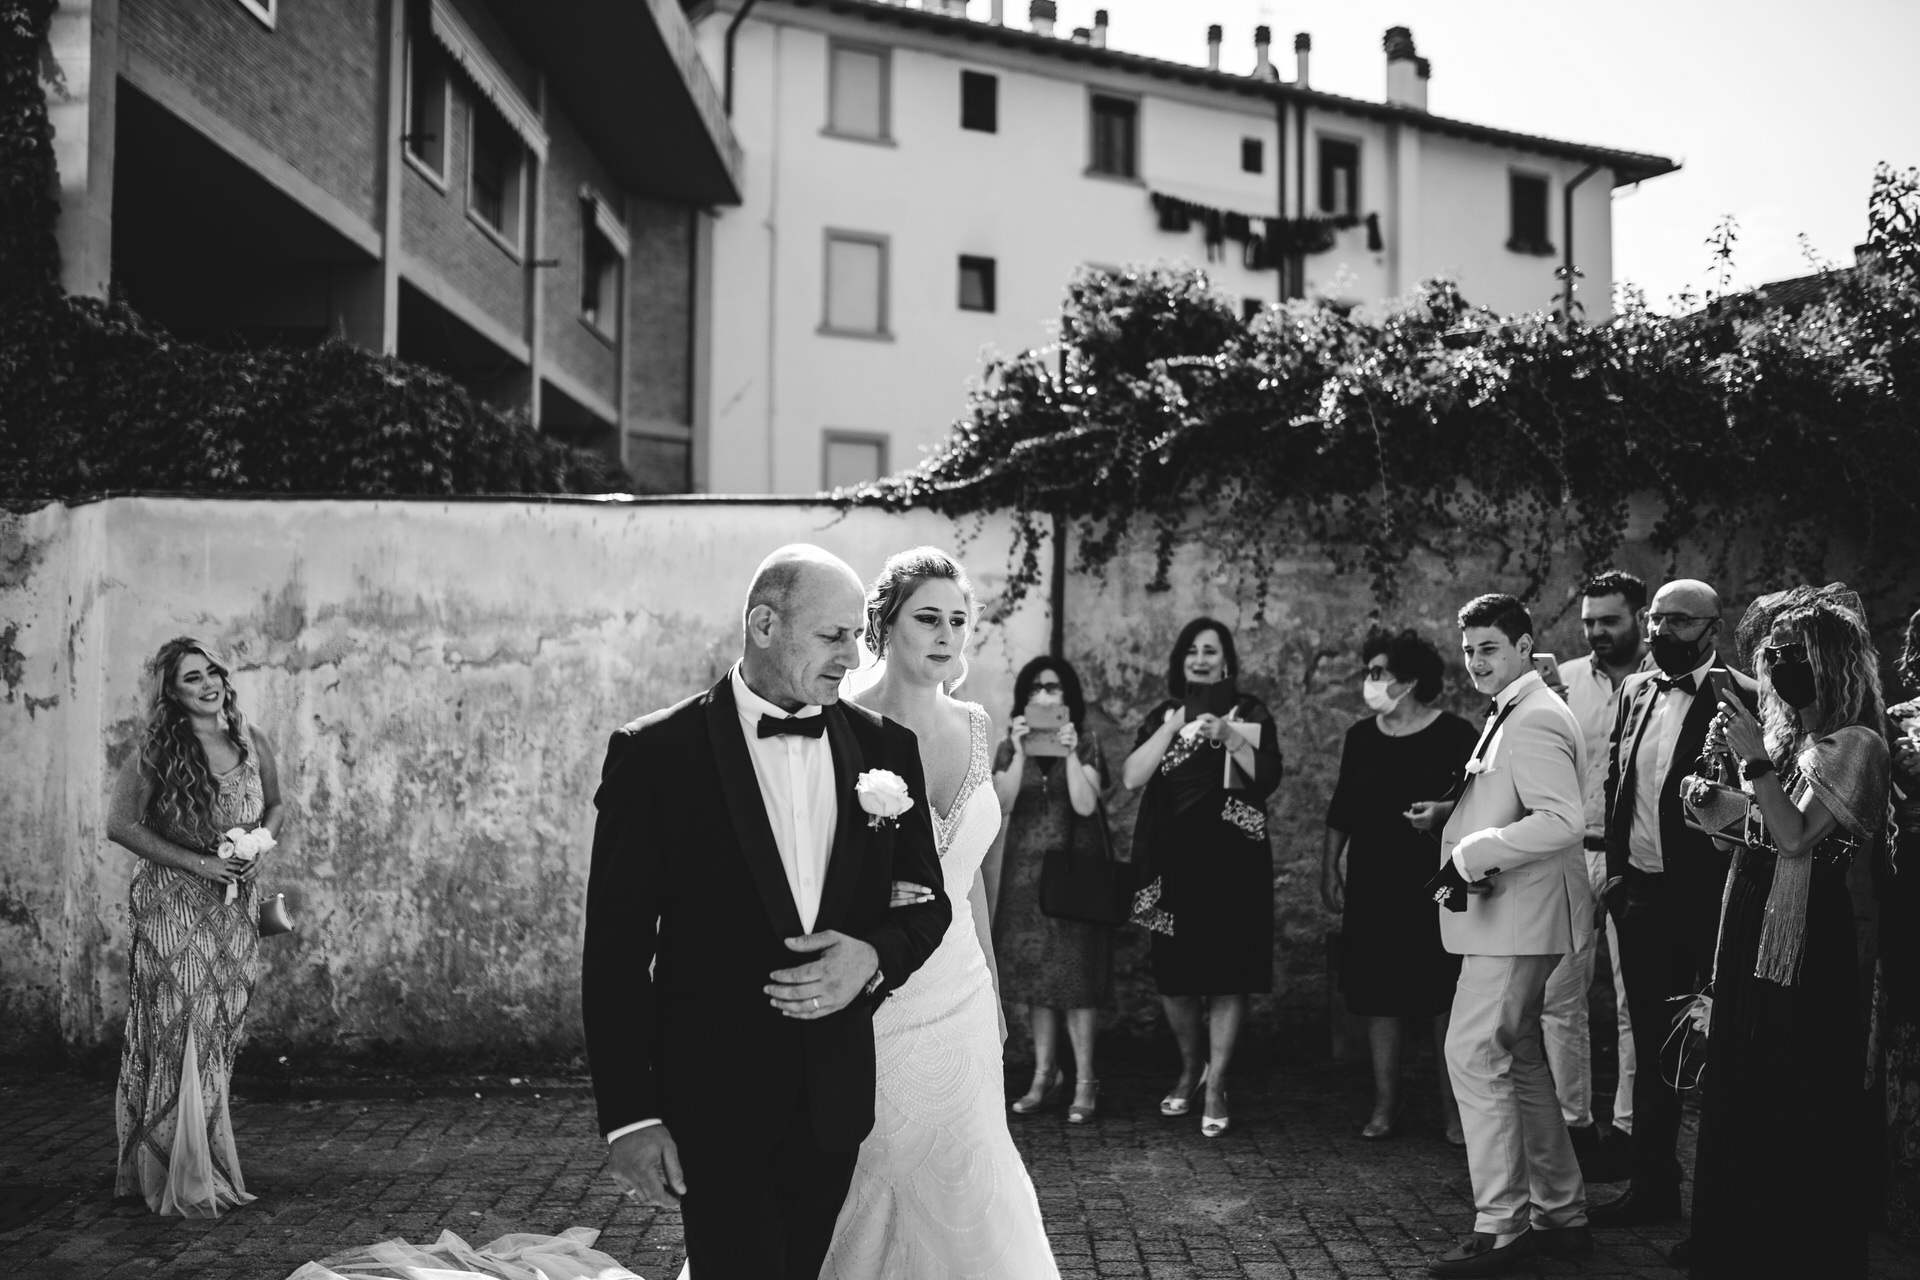 Wedding Image from the Town Hall of Borgo San Lorenzo, Florence | The bride is guided through cobblestone streets